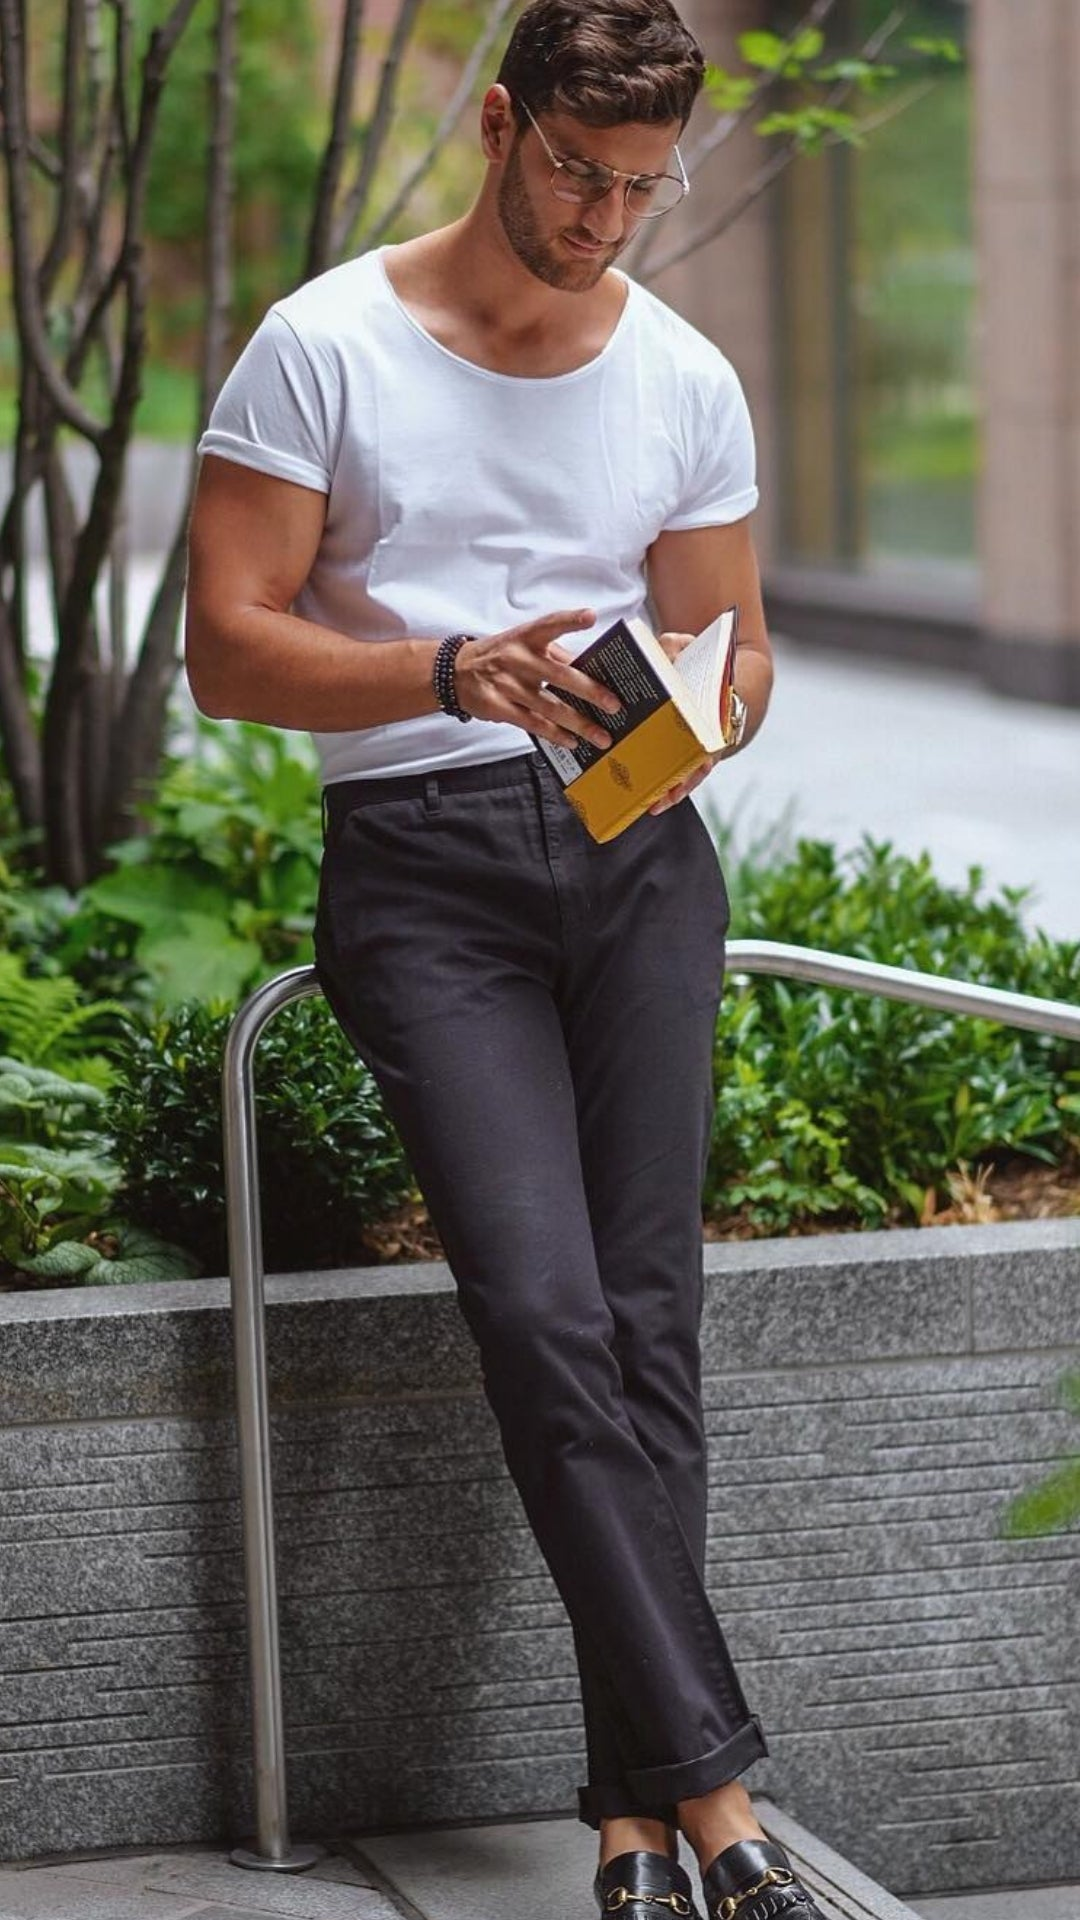 5 T-Shirt Outfits To Wear On Repeat #tshirt #outfits #minimalist #street #style #mensfashion